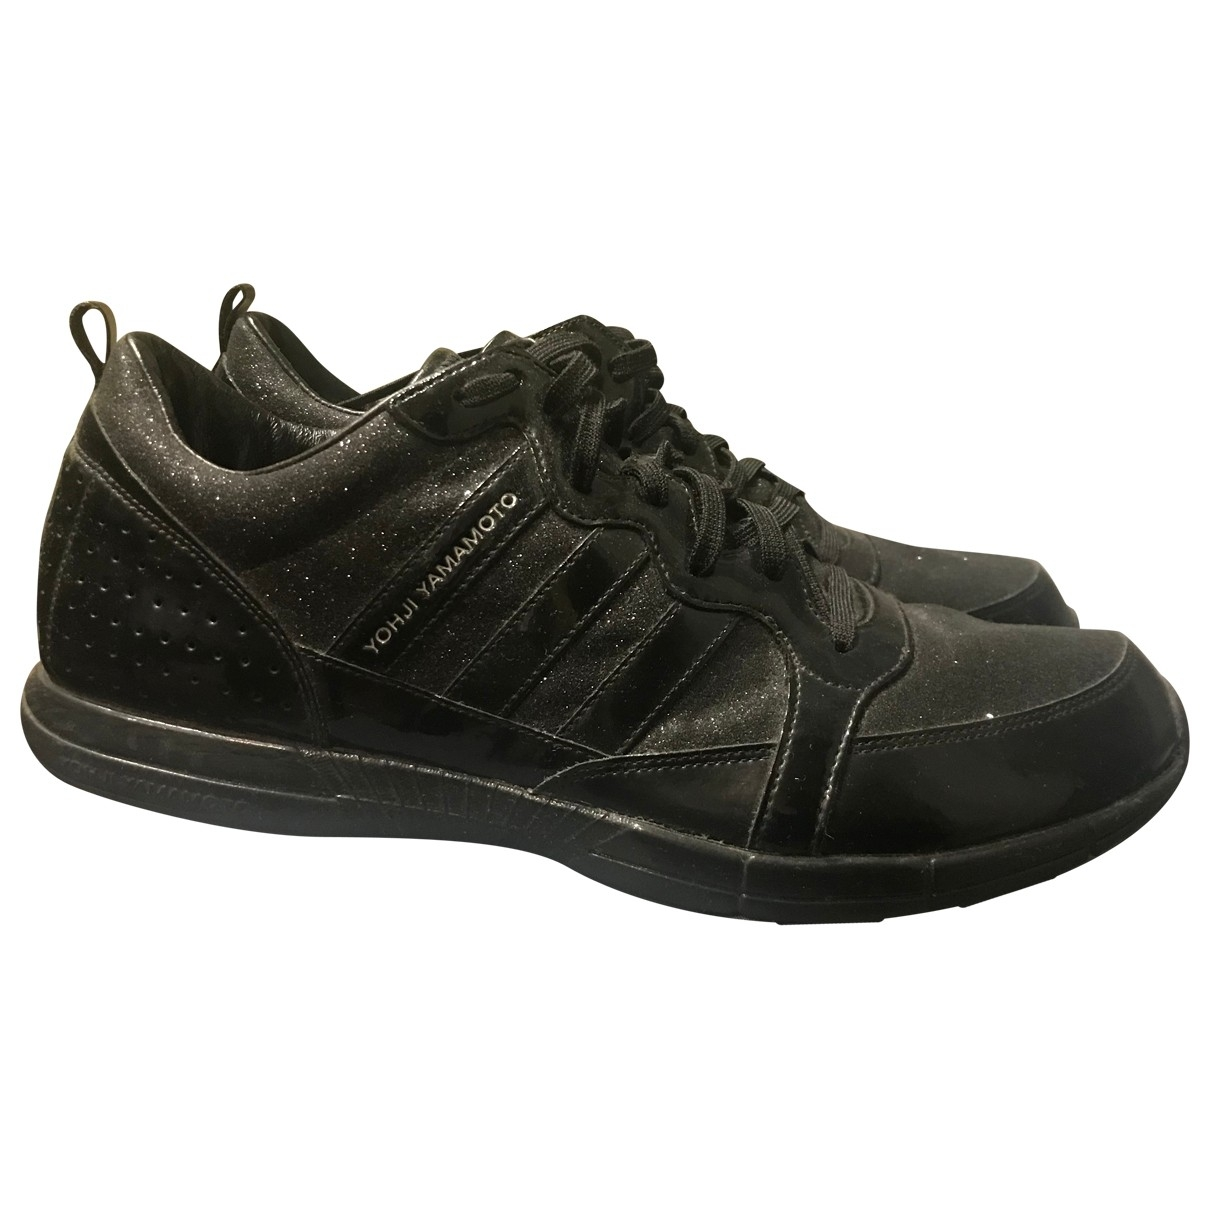 Y-3 \N Black Leather Trainers for Men 10 US